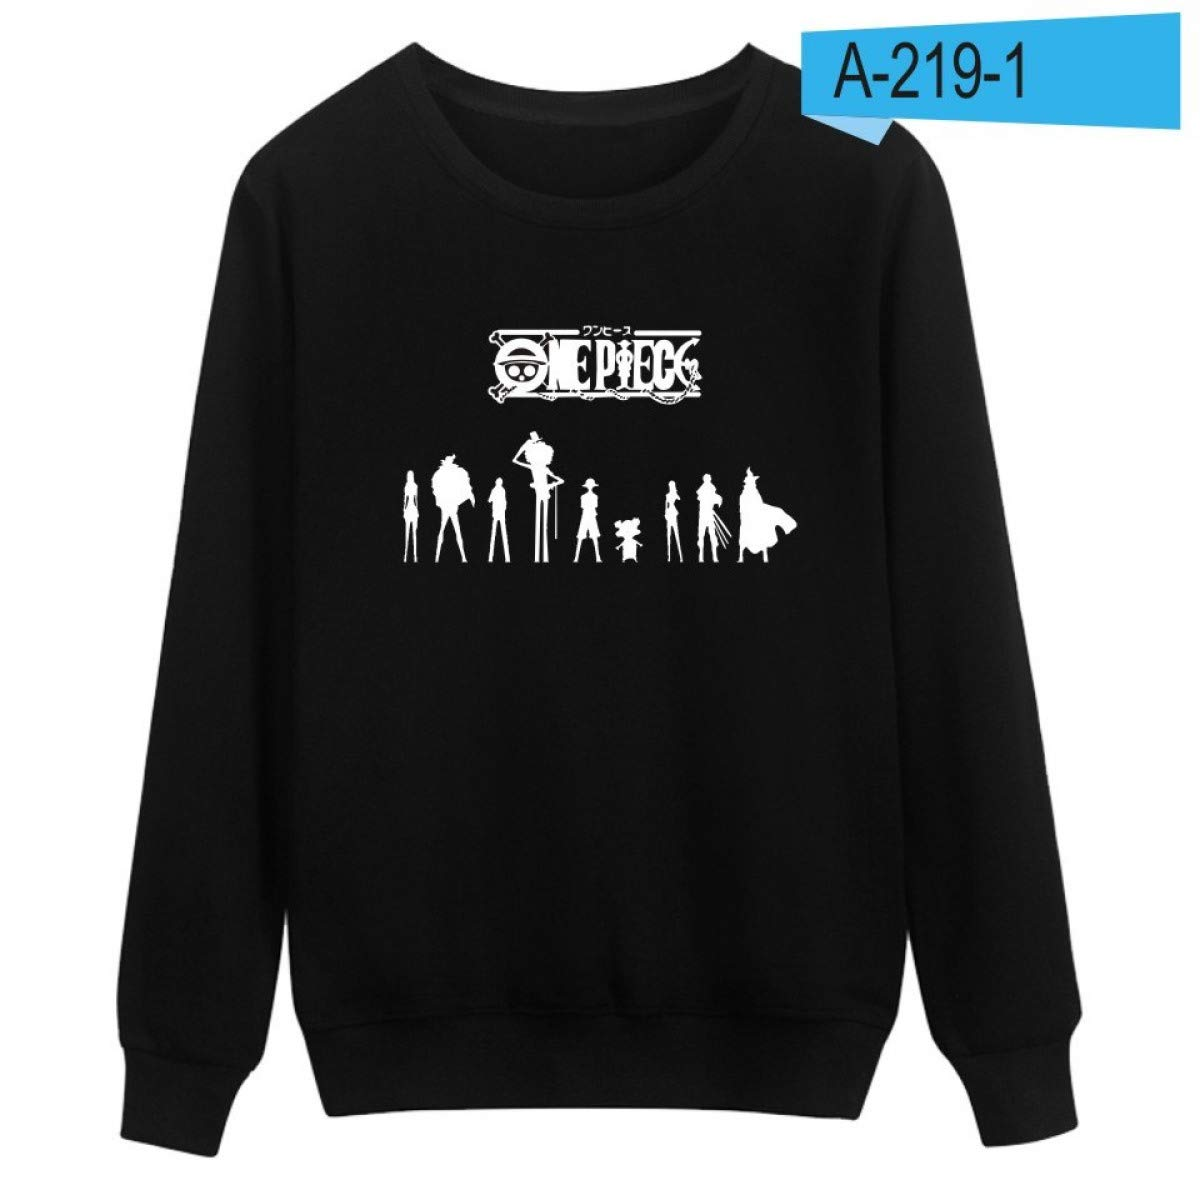 Amazon.com: FLAMINGO_STORE One Piece Sweatshirt Men Hoodie Japan Anime Hoodies Boys Cartoon Luffy Clothes: Clothing